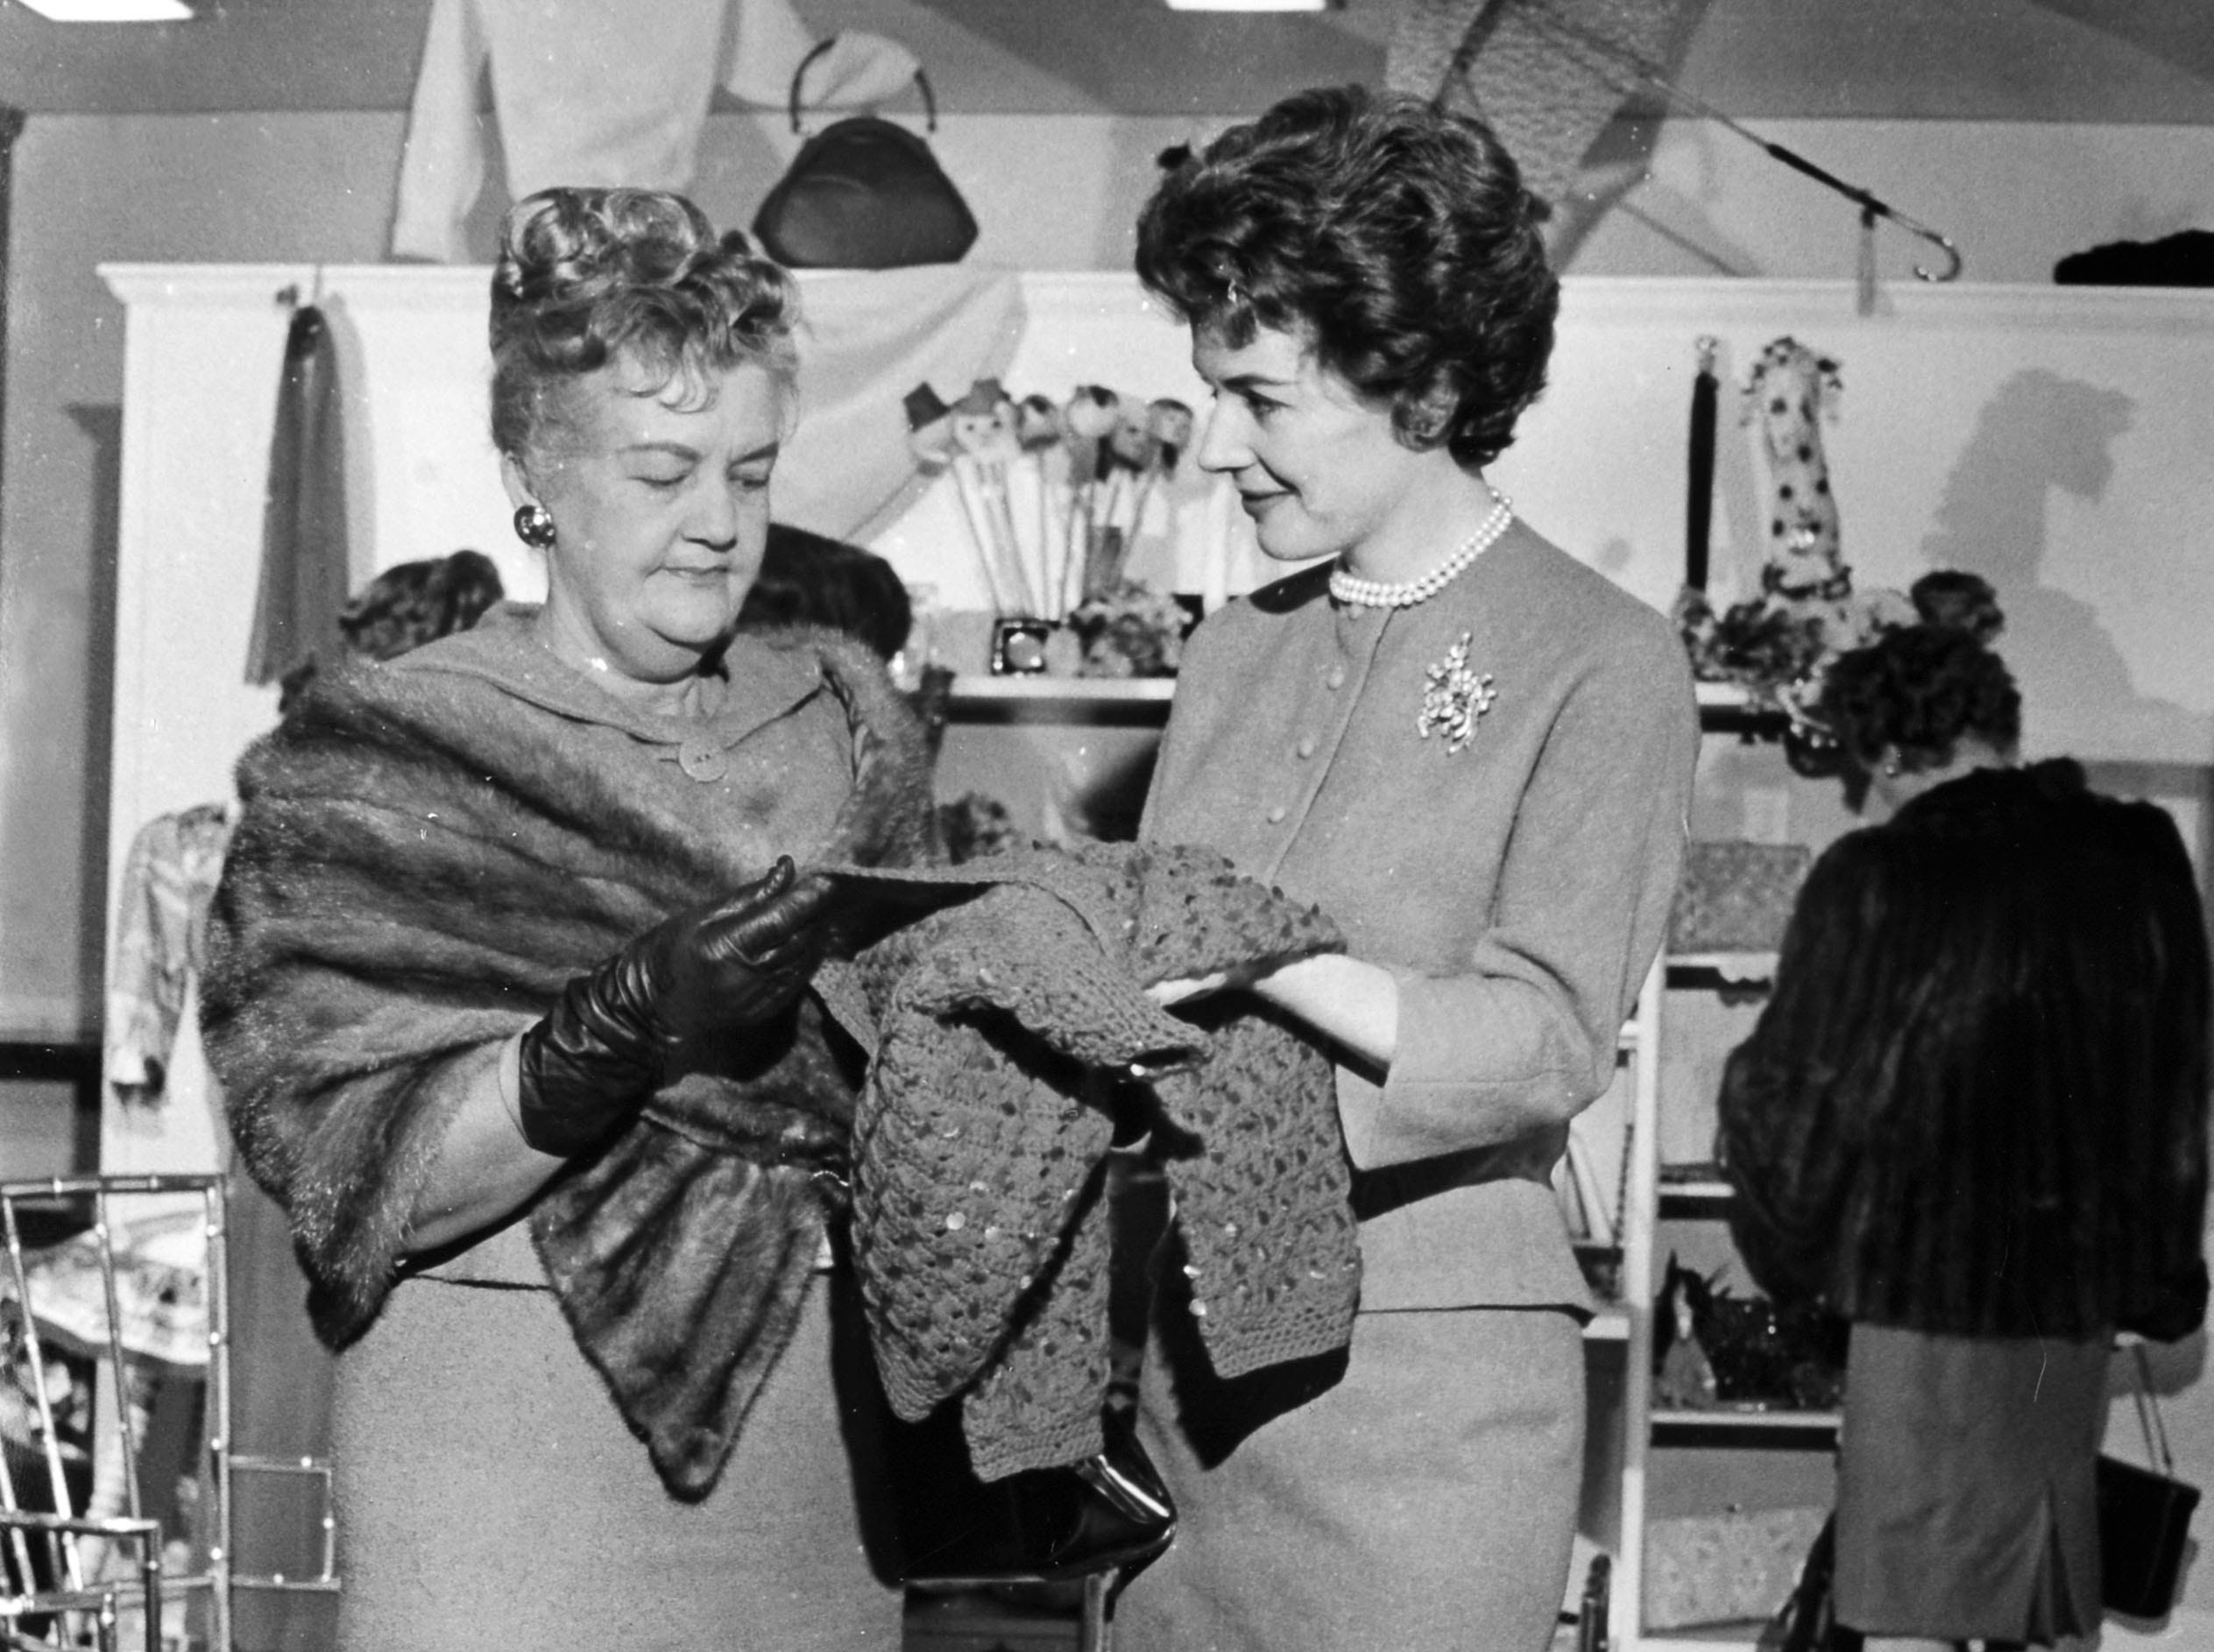 Polly Bergen shows Mrs. Clyde Brownsey, 4411 Exemouth Drive, a jeweled sweater on Nov. 30, 1959, at the opening of Bergen's new shop, Polly Bergen's Fashions of the Four Seasons, 6113 Chapman Highway.